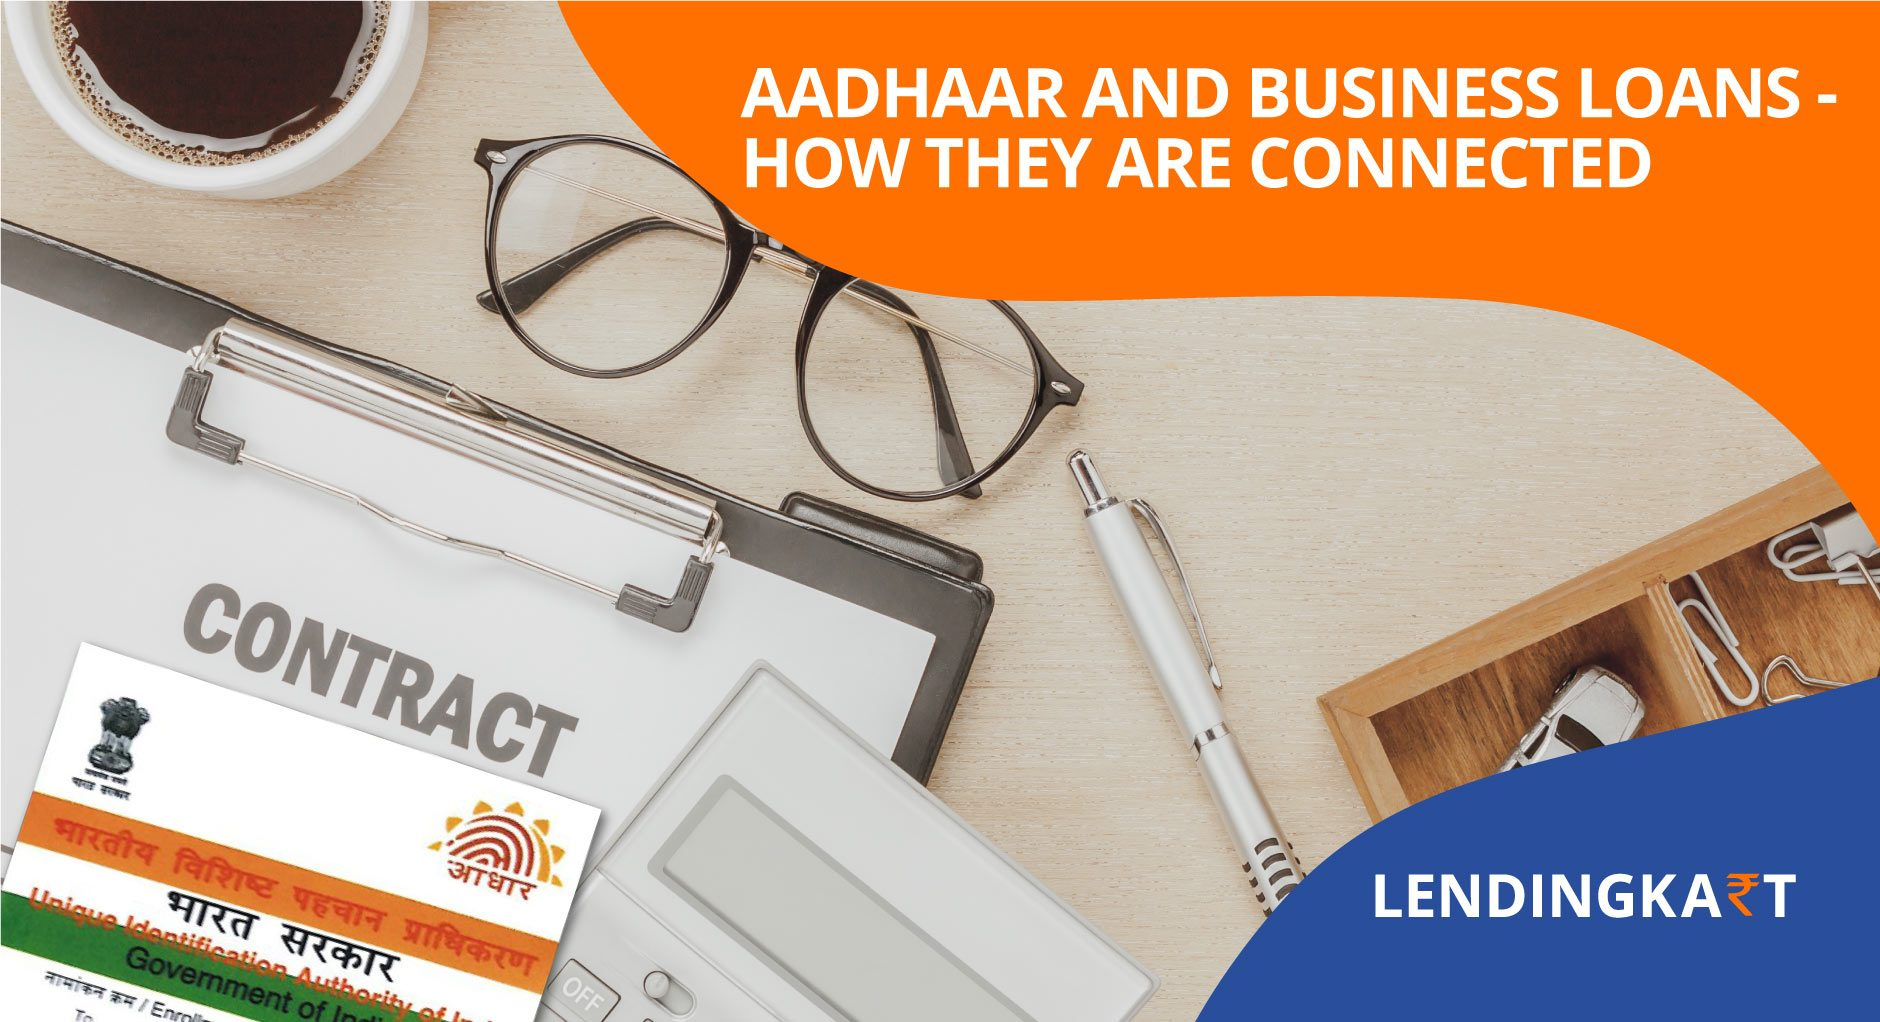 Aadhaar for Business Loans